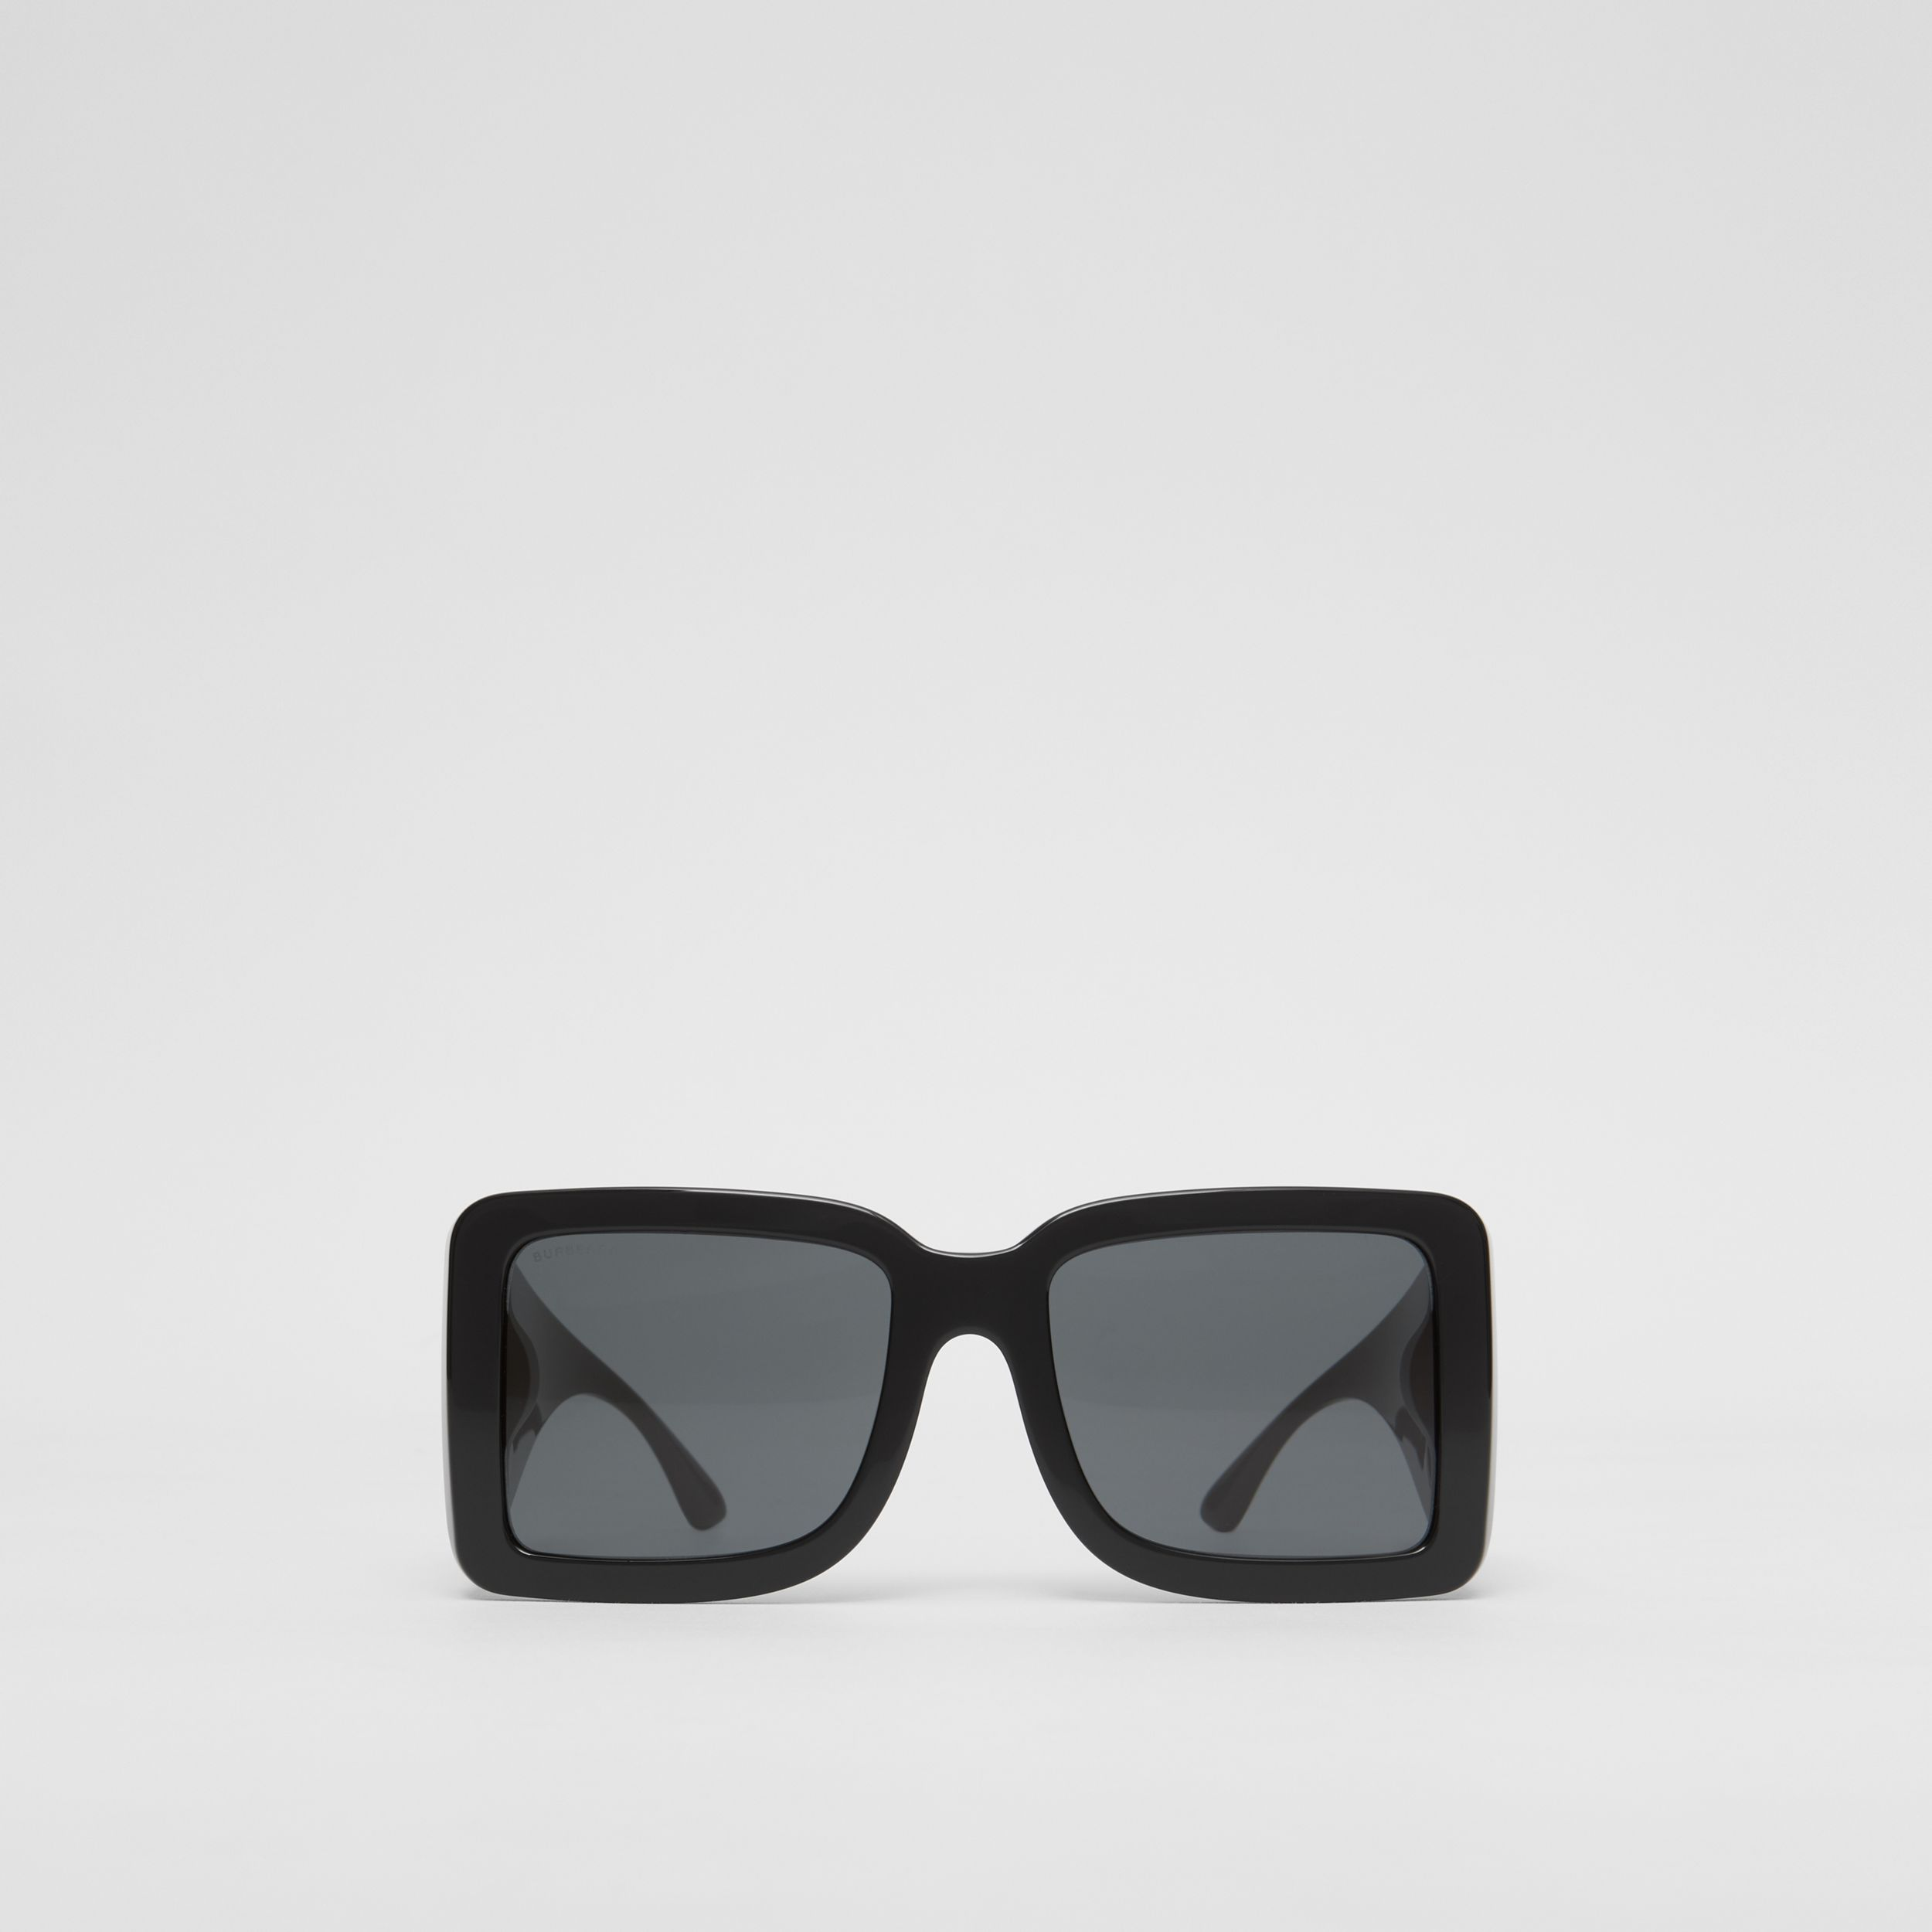 B Motif Square Frame Sunglasses in Black | Burberry United States - 1